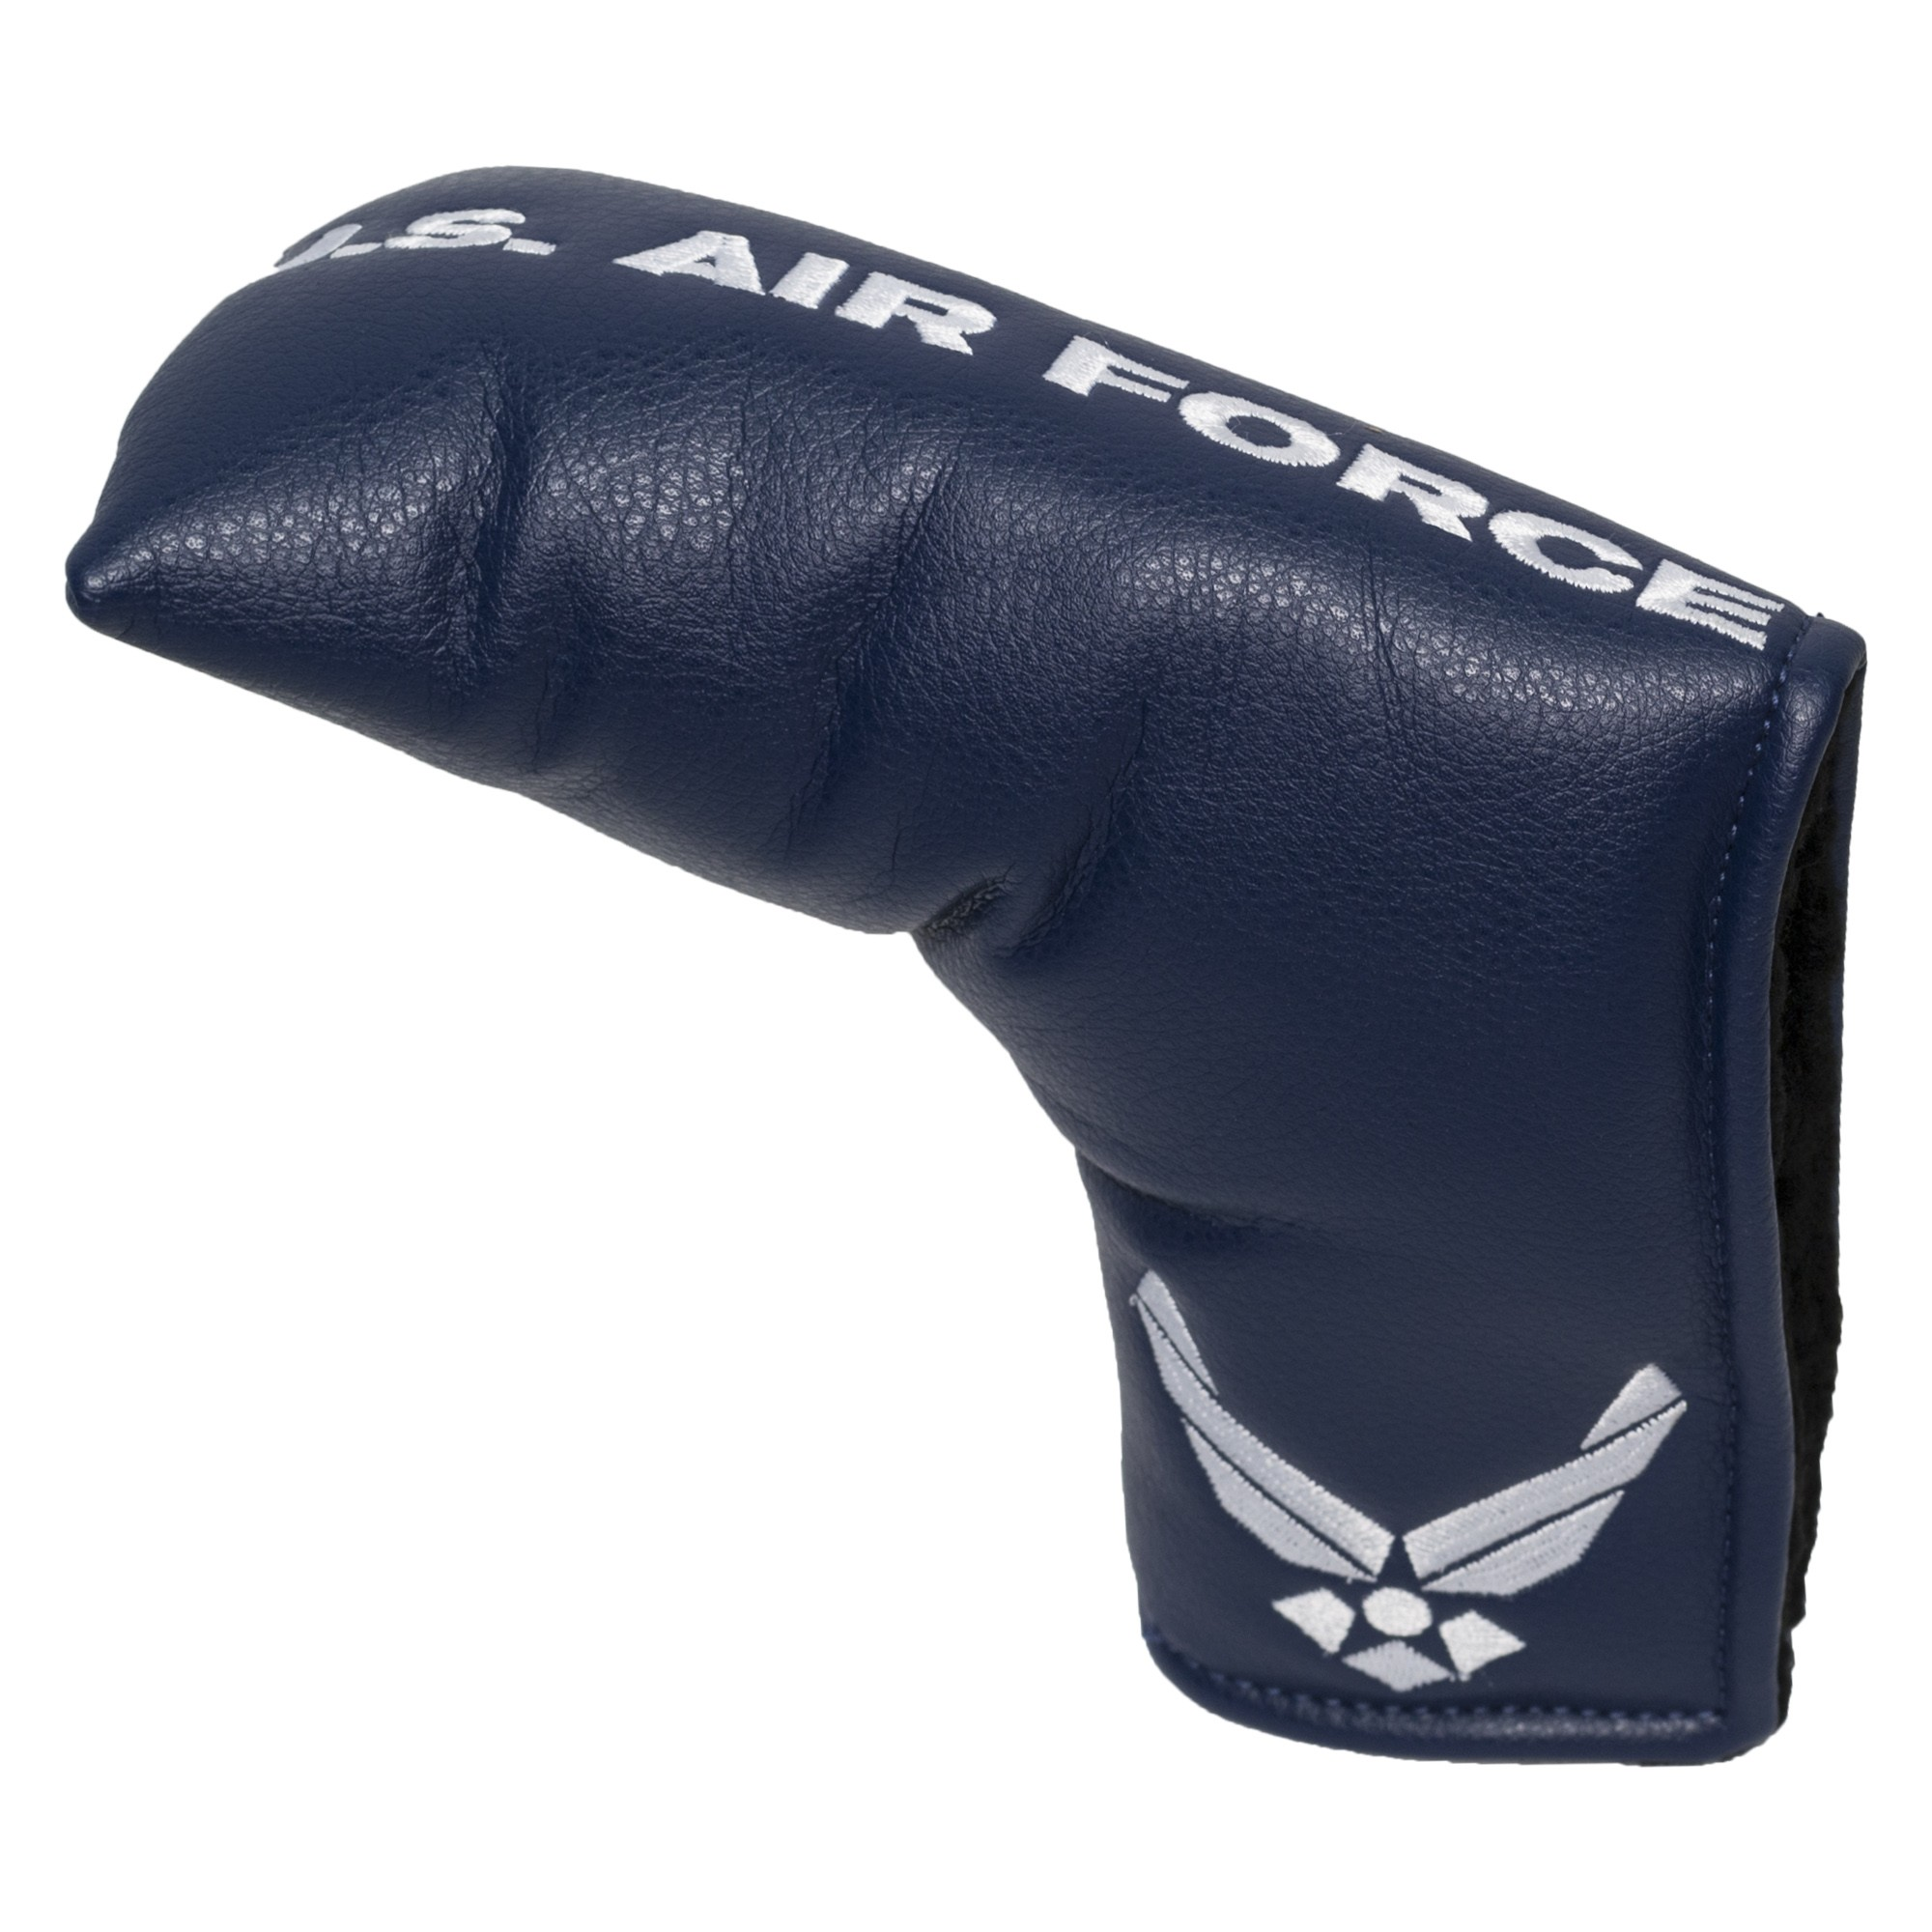 U.S. Air Force Vintage Blade Putter Cover